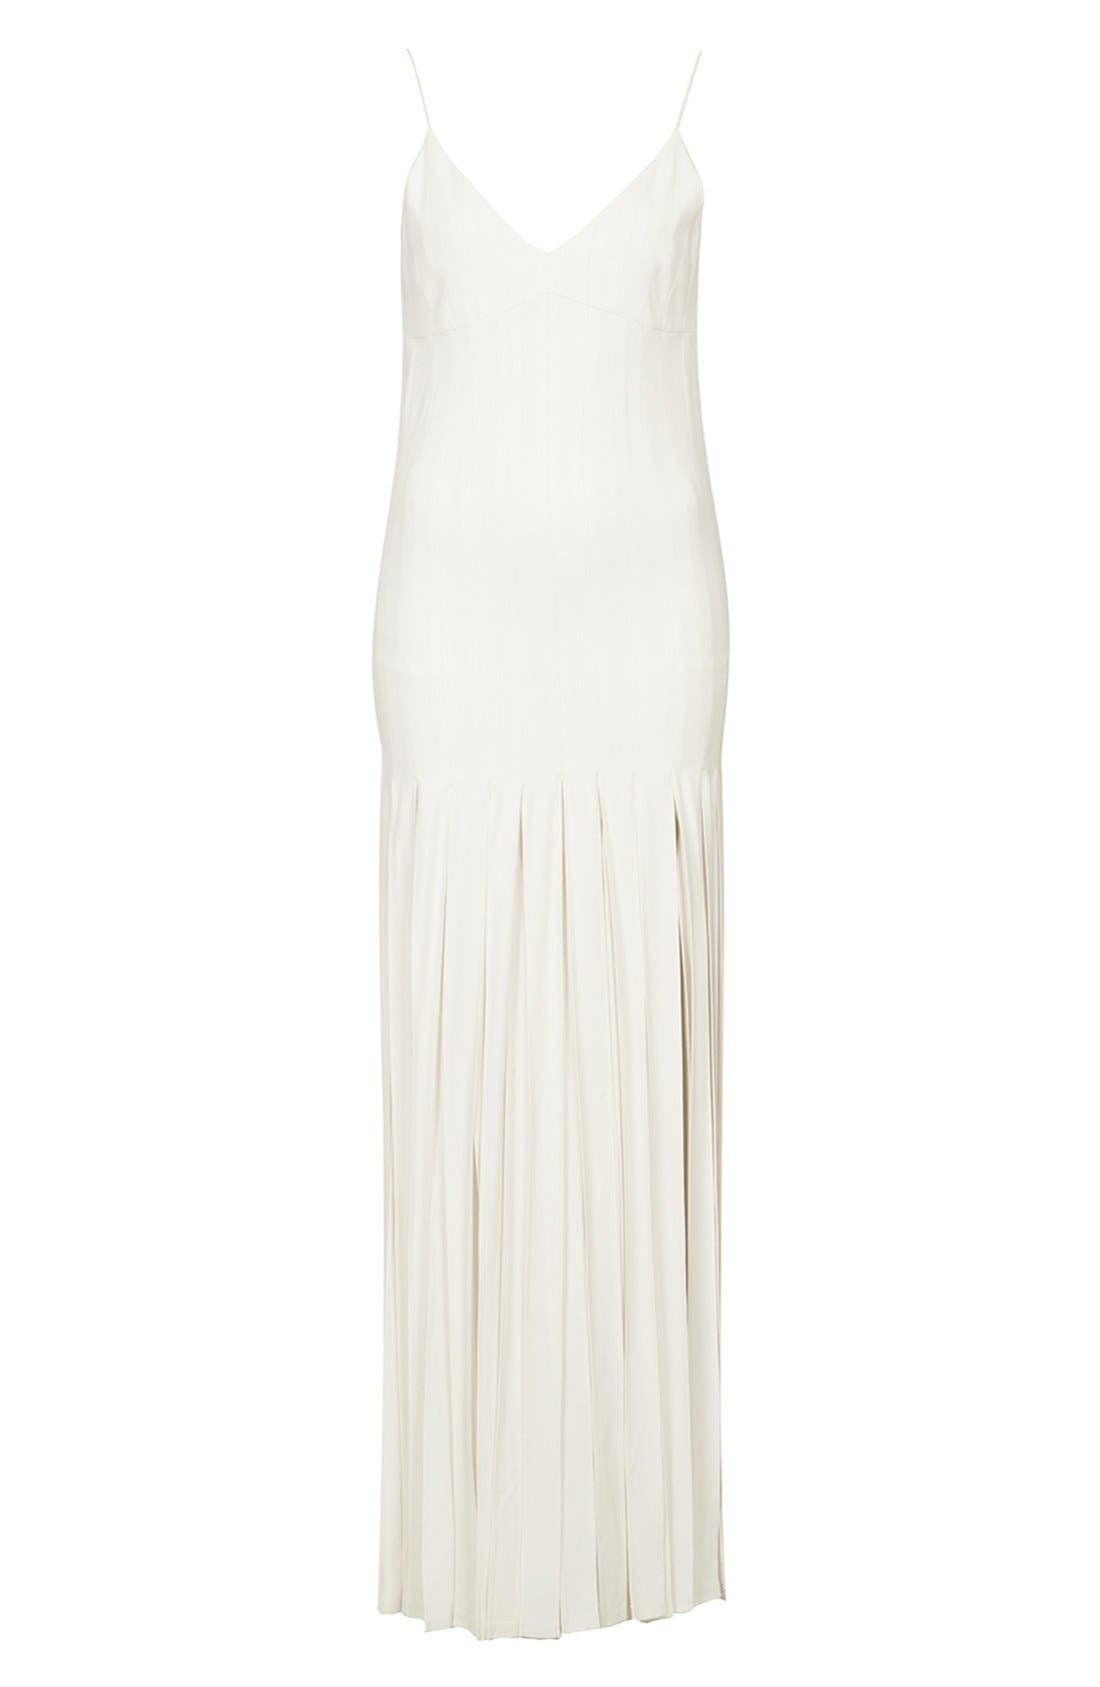 Kate Moss for Topshop Splice Skirt Maxi Dress,                             Alternate thumbnail 6, color,